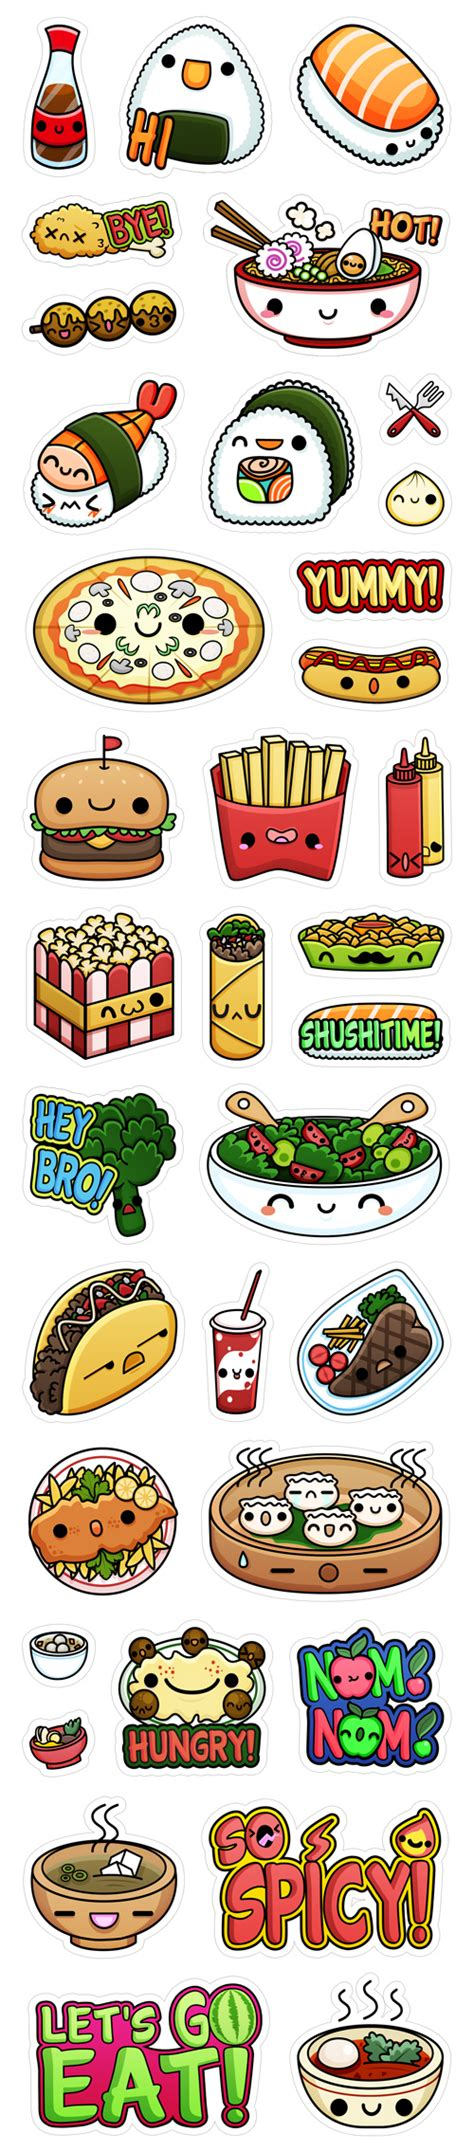 viber doodle drawings viber s kawaii food stickers squid pig ilustradores kawaii